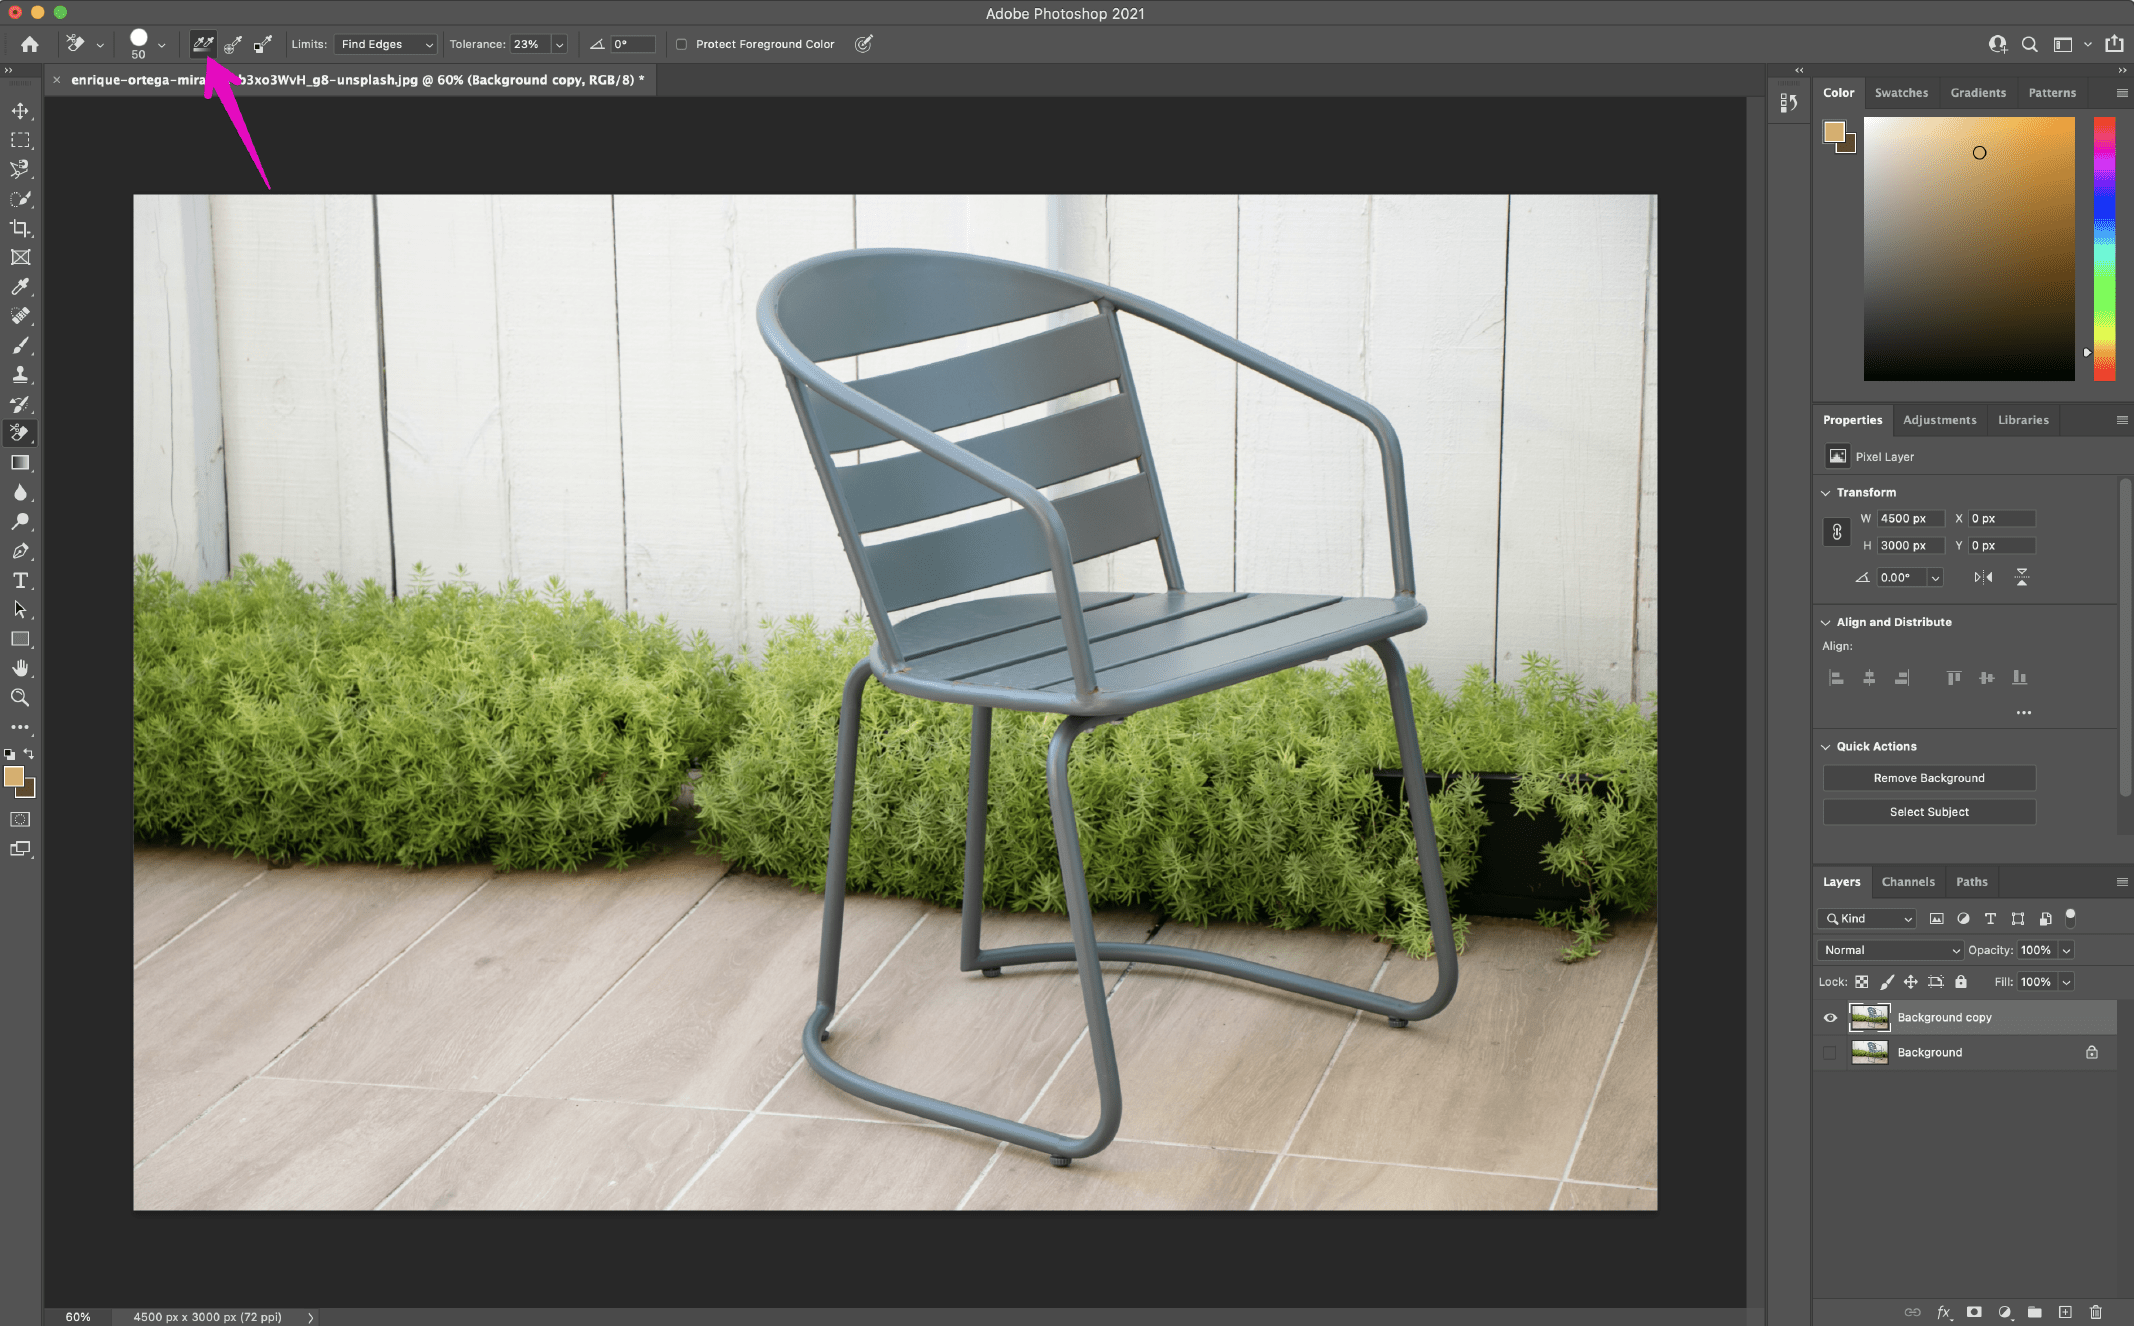 Remove Background in Photoshop using the Background Eraser Tool 2